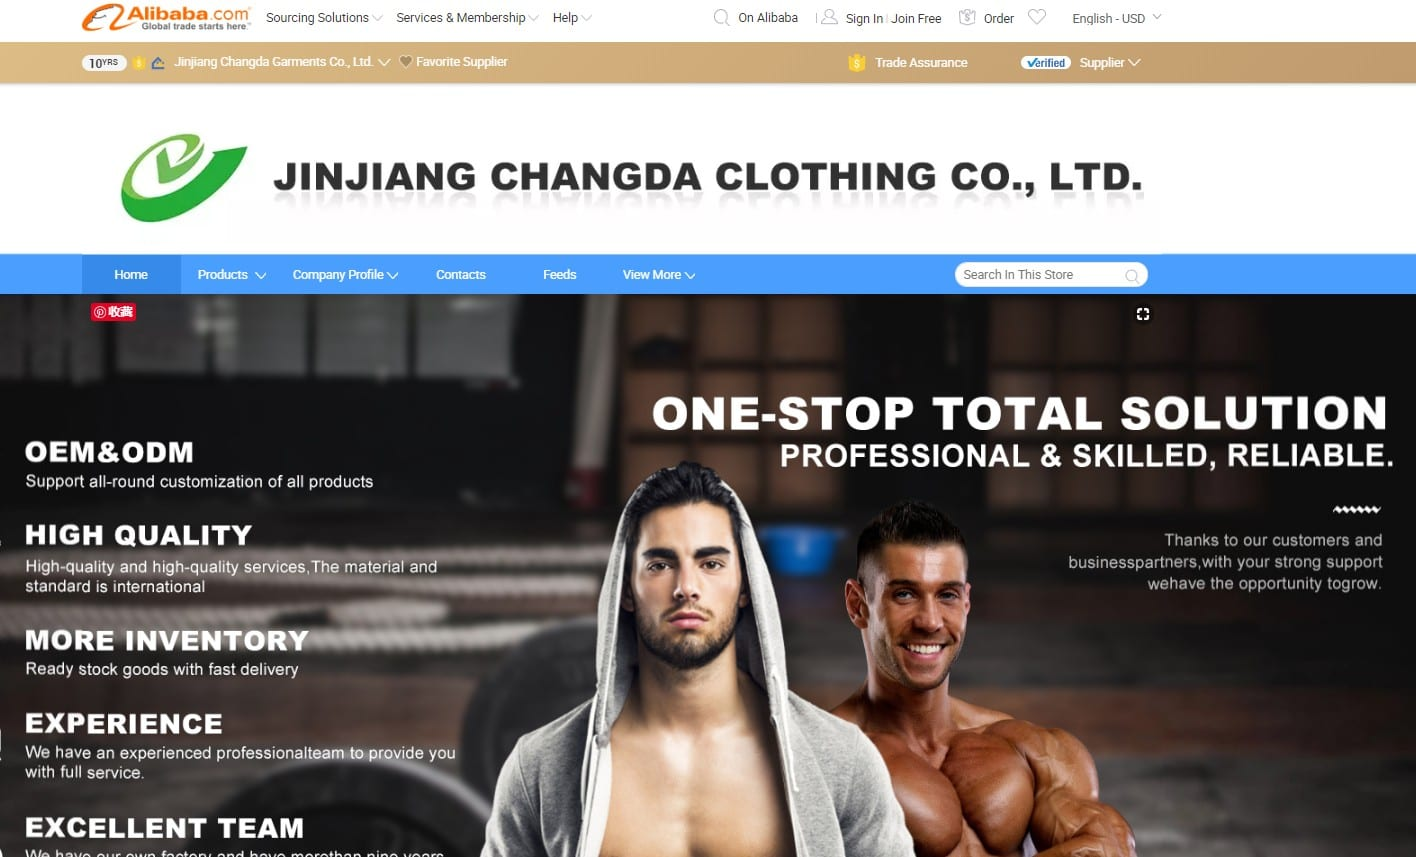 fjchangda homepage